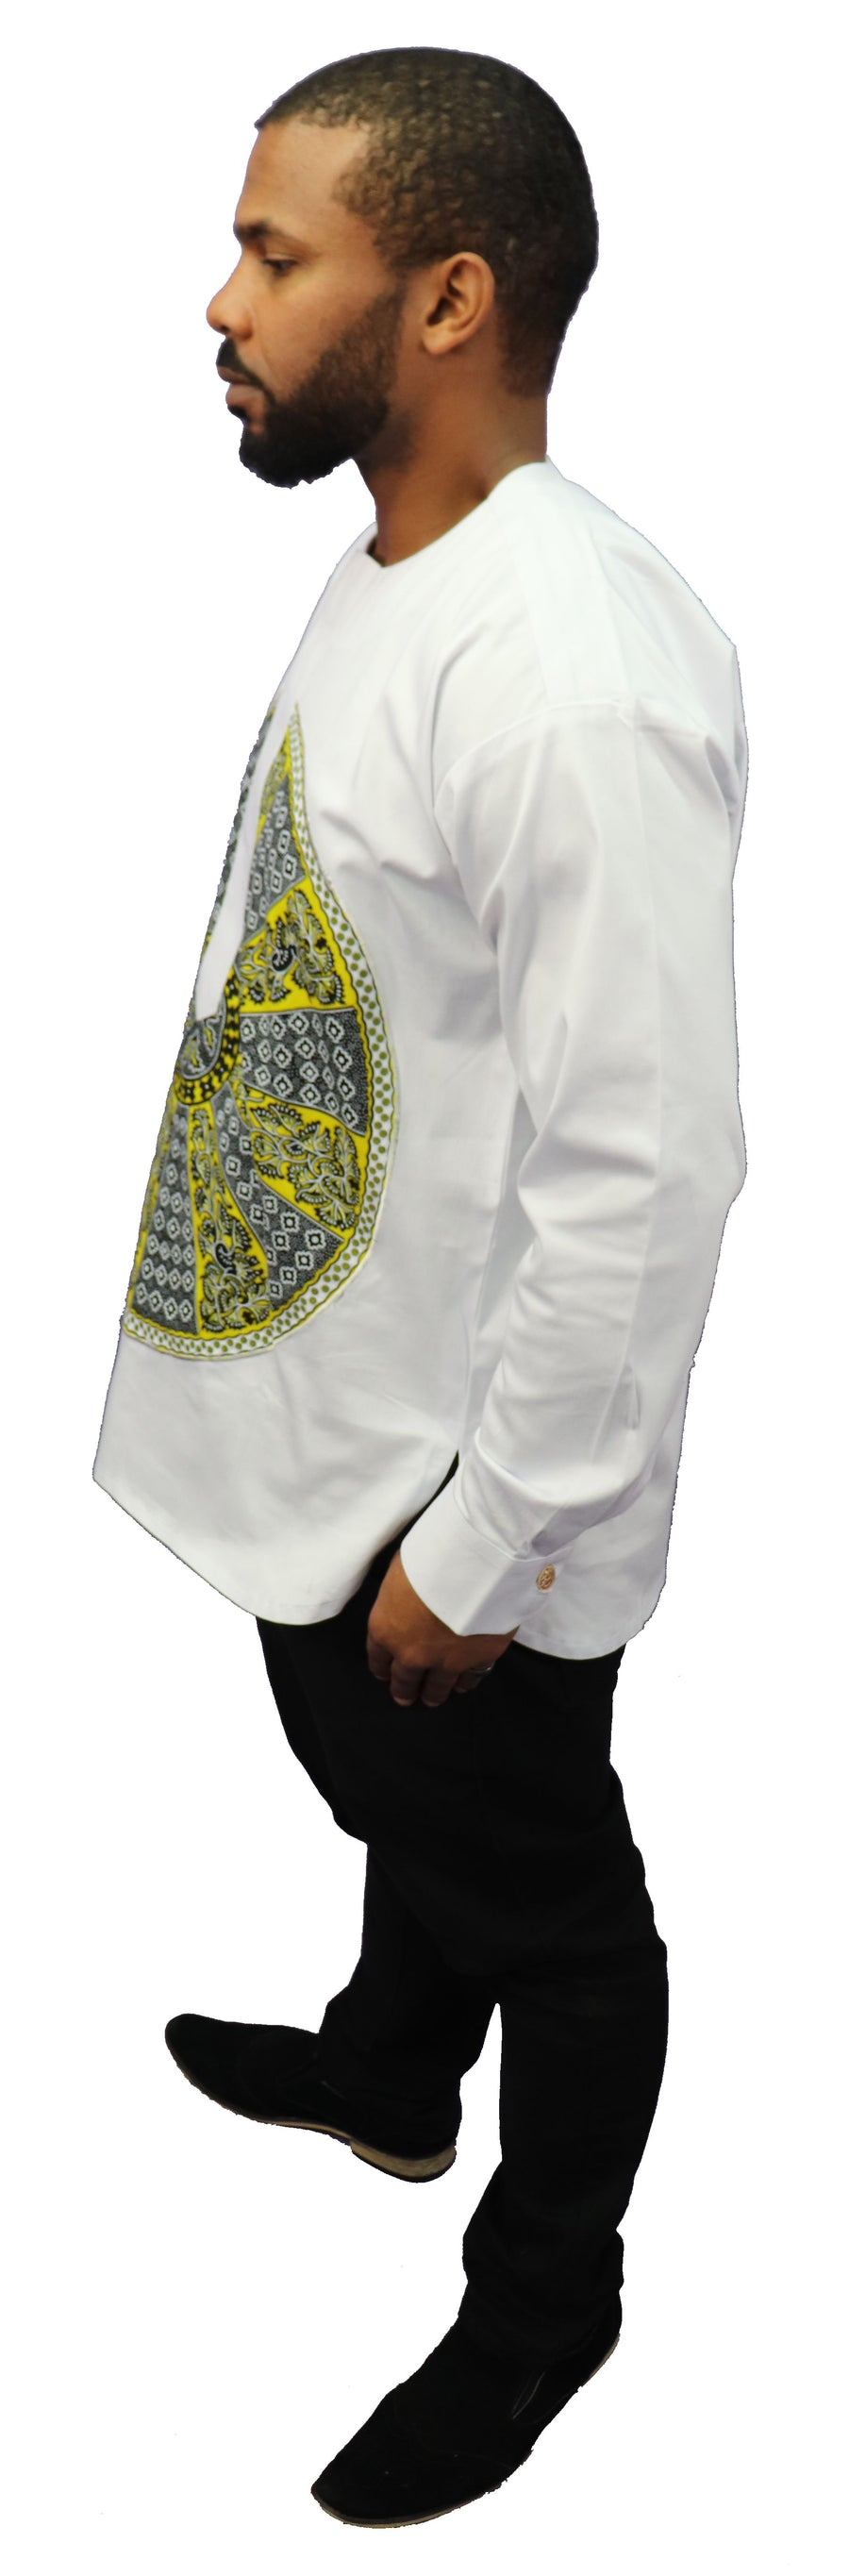 Long Sleeved Polo Style Shirt w/ African Print - 03